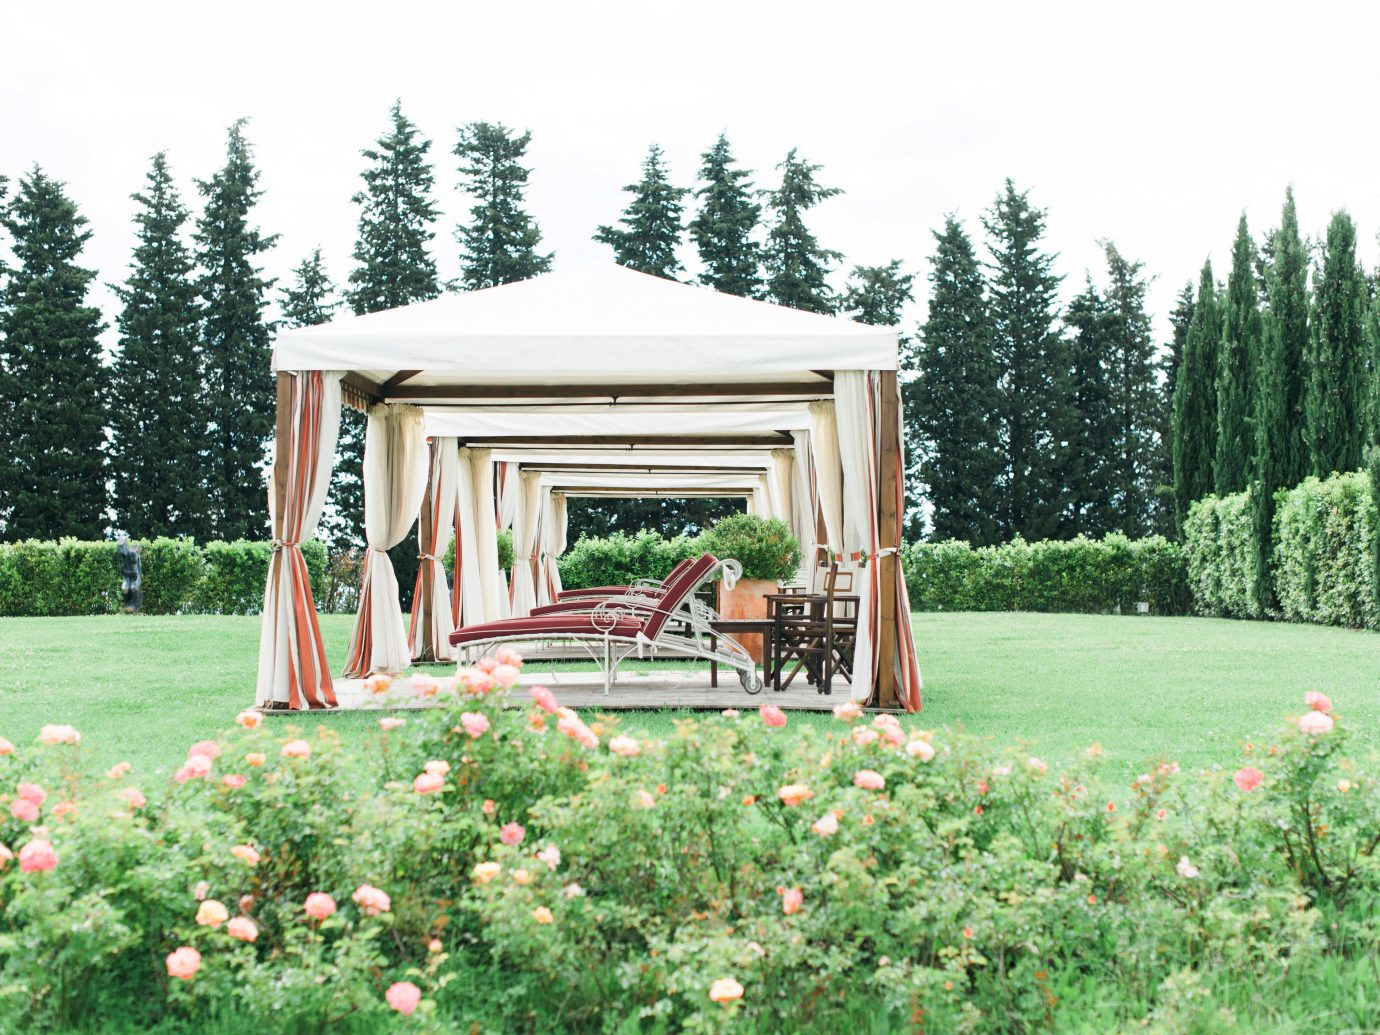 Boutique Classic Country Elegant Grounds Historic Honeymoon Romance Romantic Trip Ideas Vineyard Winery tree grass sky outdoor backyard gazebo log cabin cottage Garden home outdoor structure yard lawn estate woodland house decorated